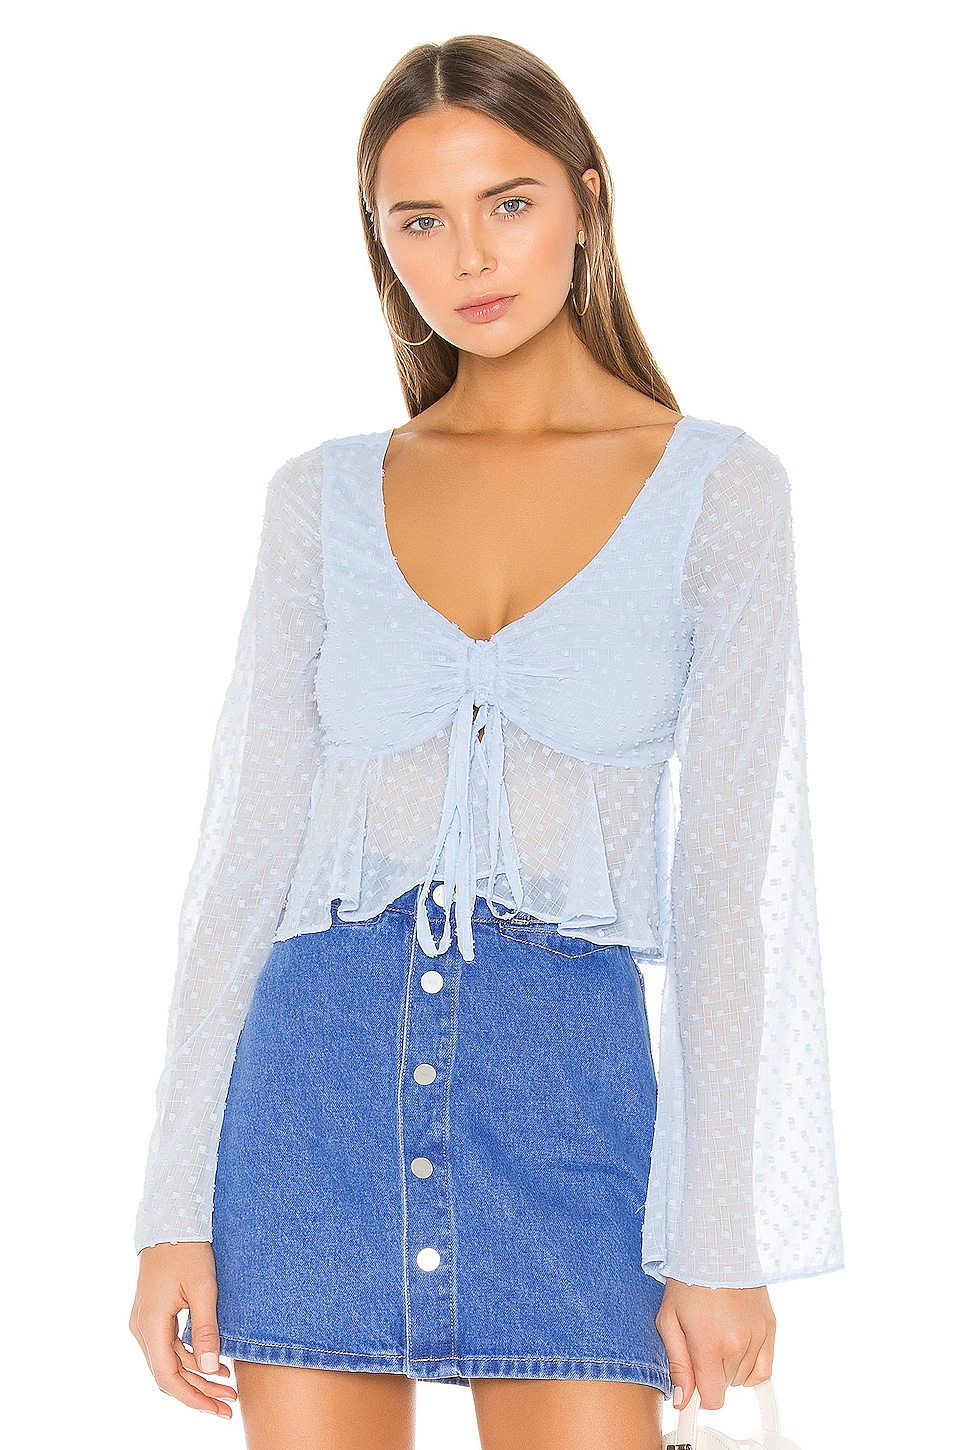 Lovers + Friends Lily Top in Baby Blue